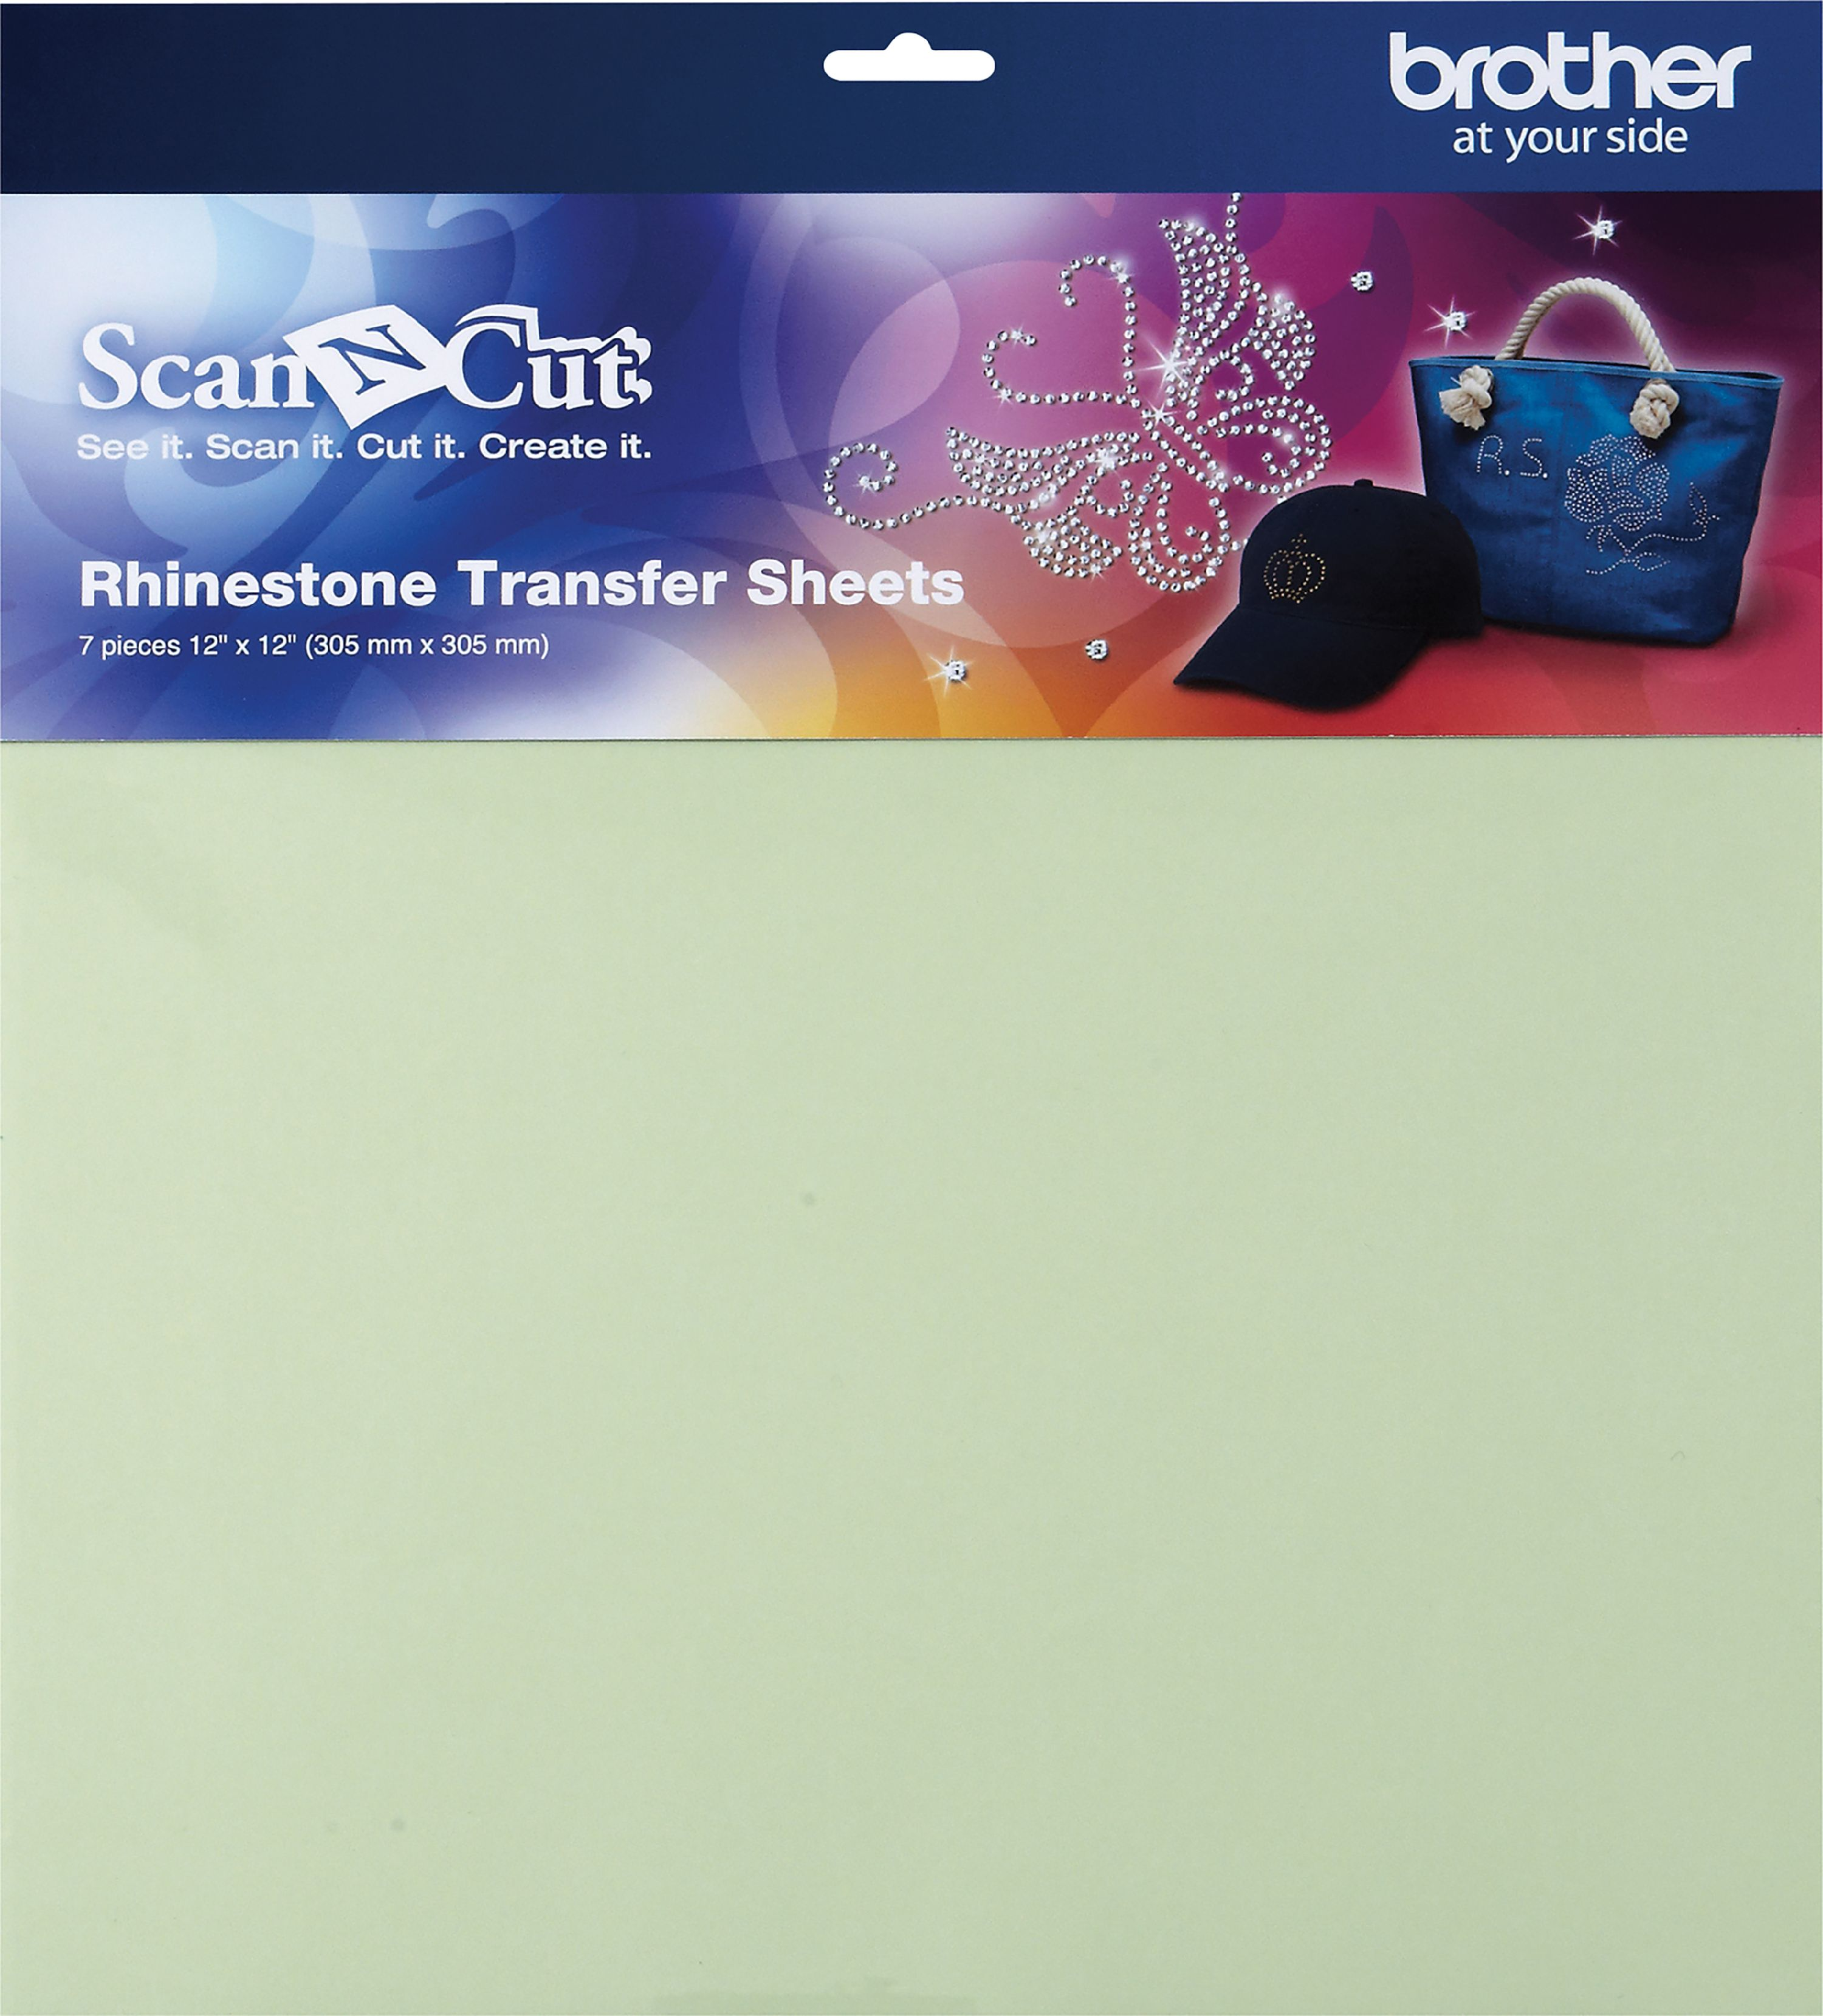 Brother ScanNCut Rhinestone Transfer Sheets 7/Pkg-